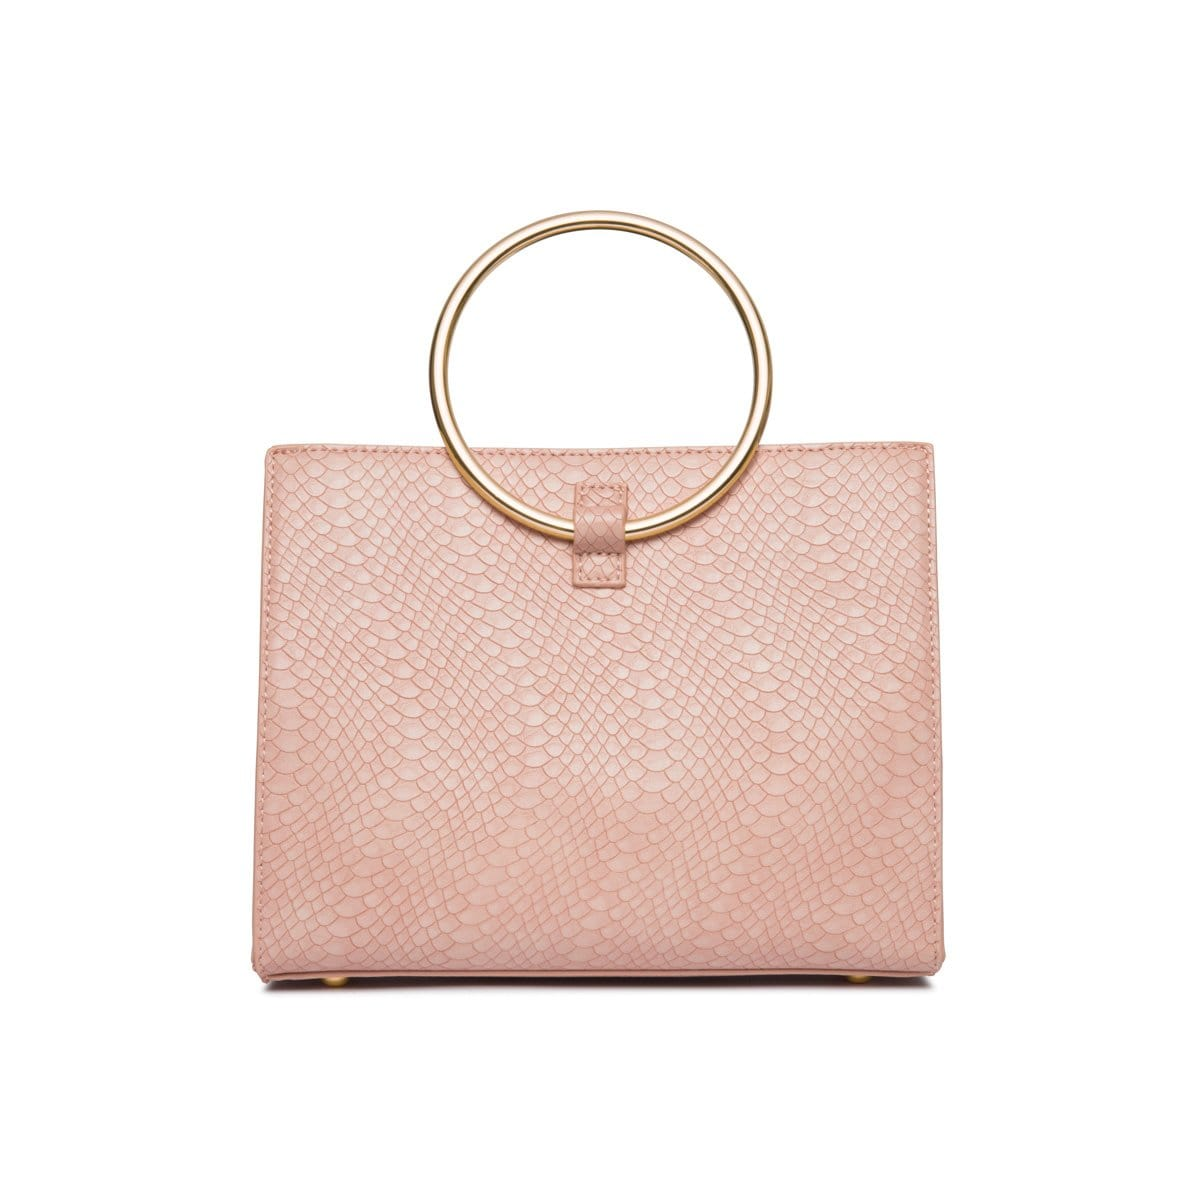 Carnation Pink Moda Handbag Yellow Gold